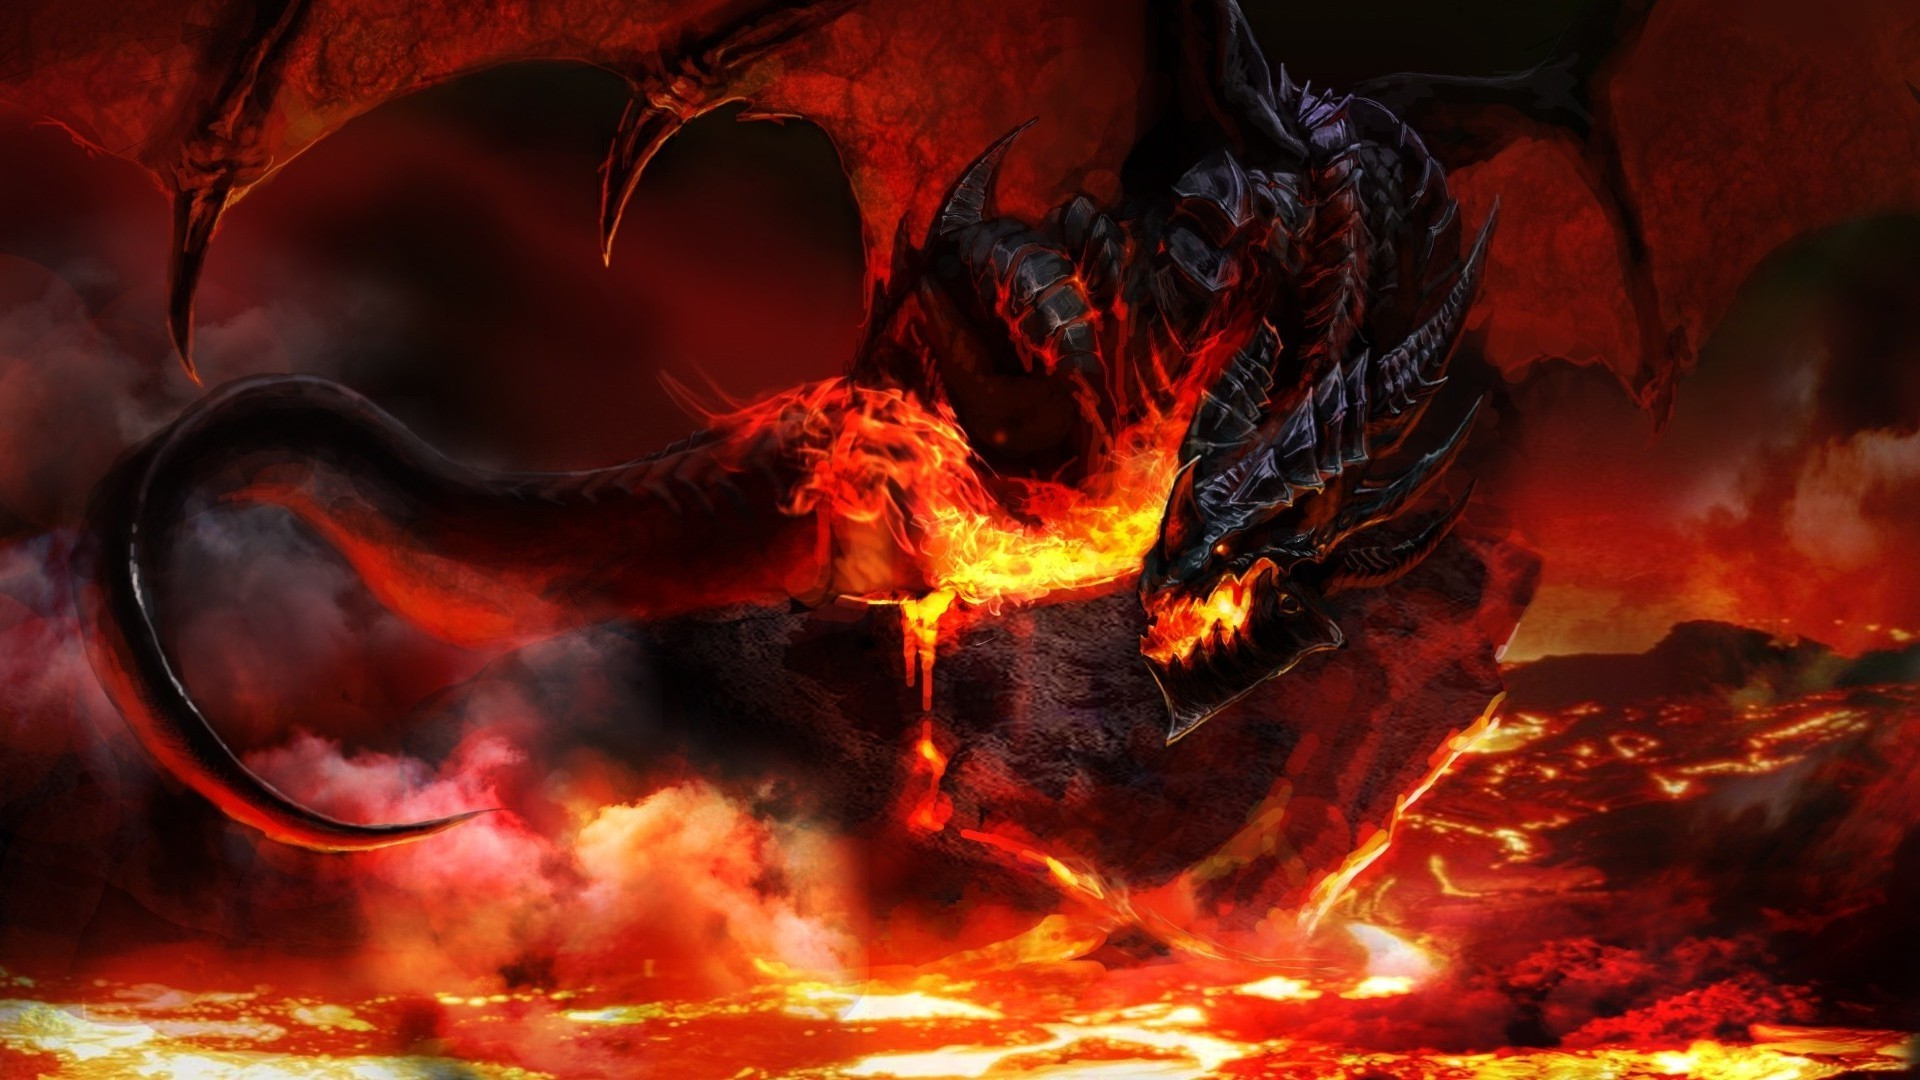 Anime Dragon Wallpaper (67+ Images